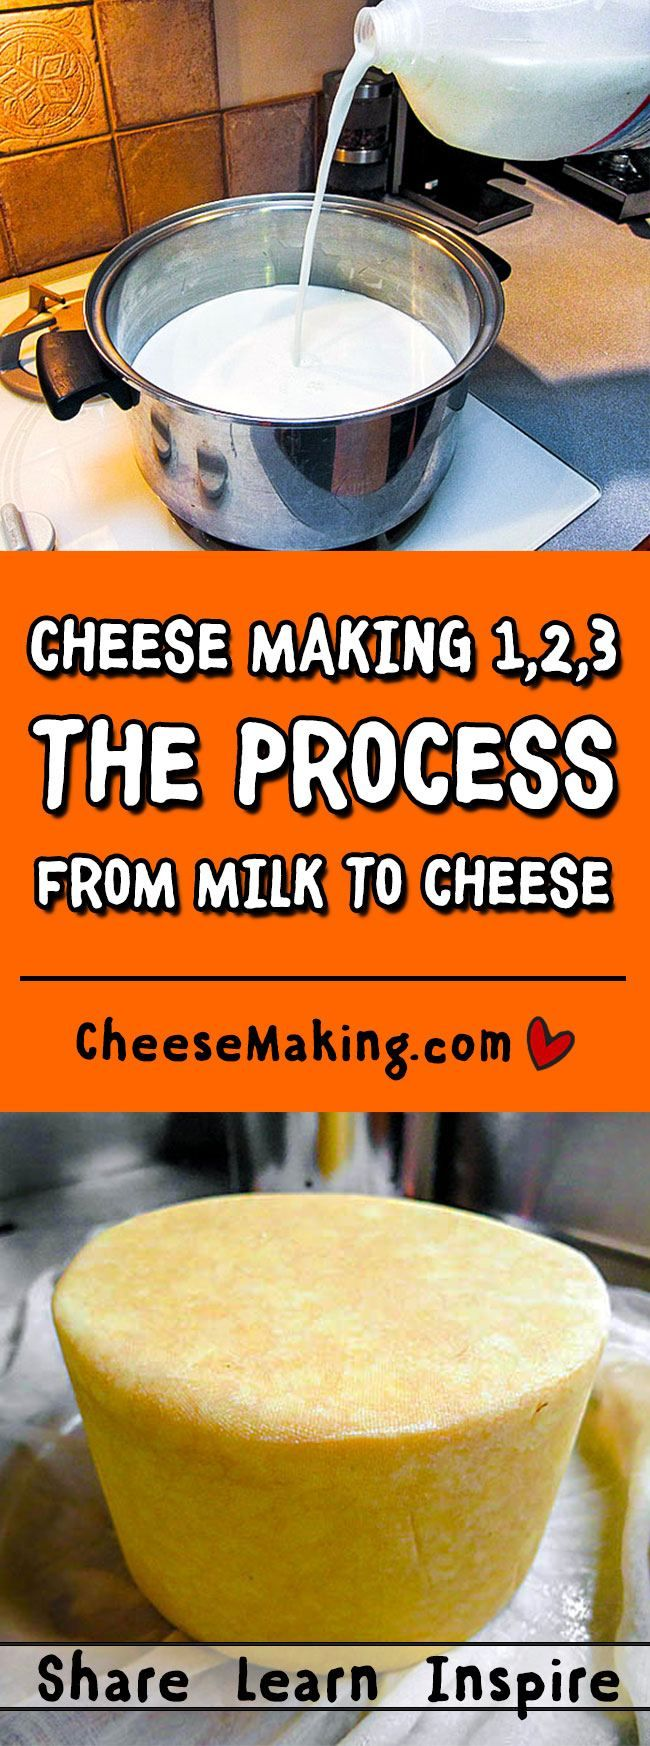 Cheesemaking 1,2,3 - The Process   How the Make Cheese   Cheesemaking.com